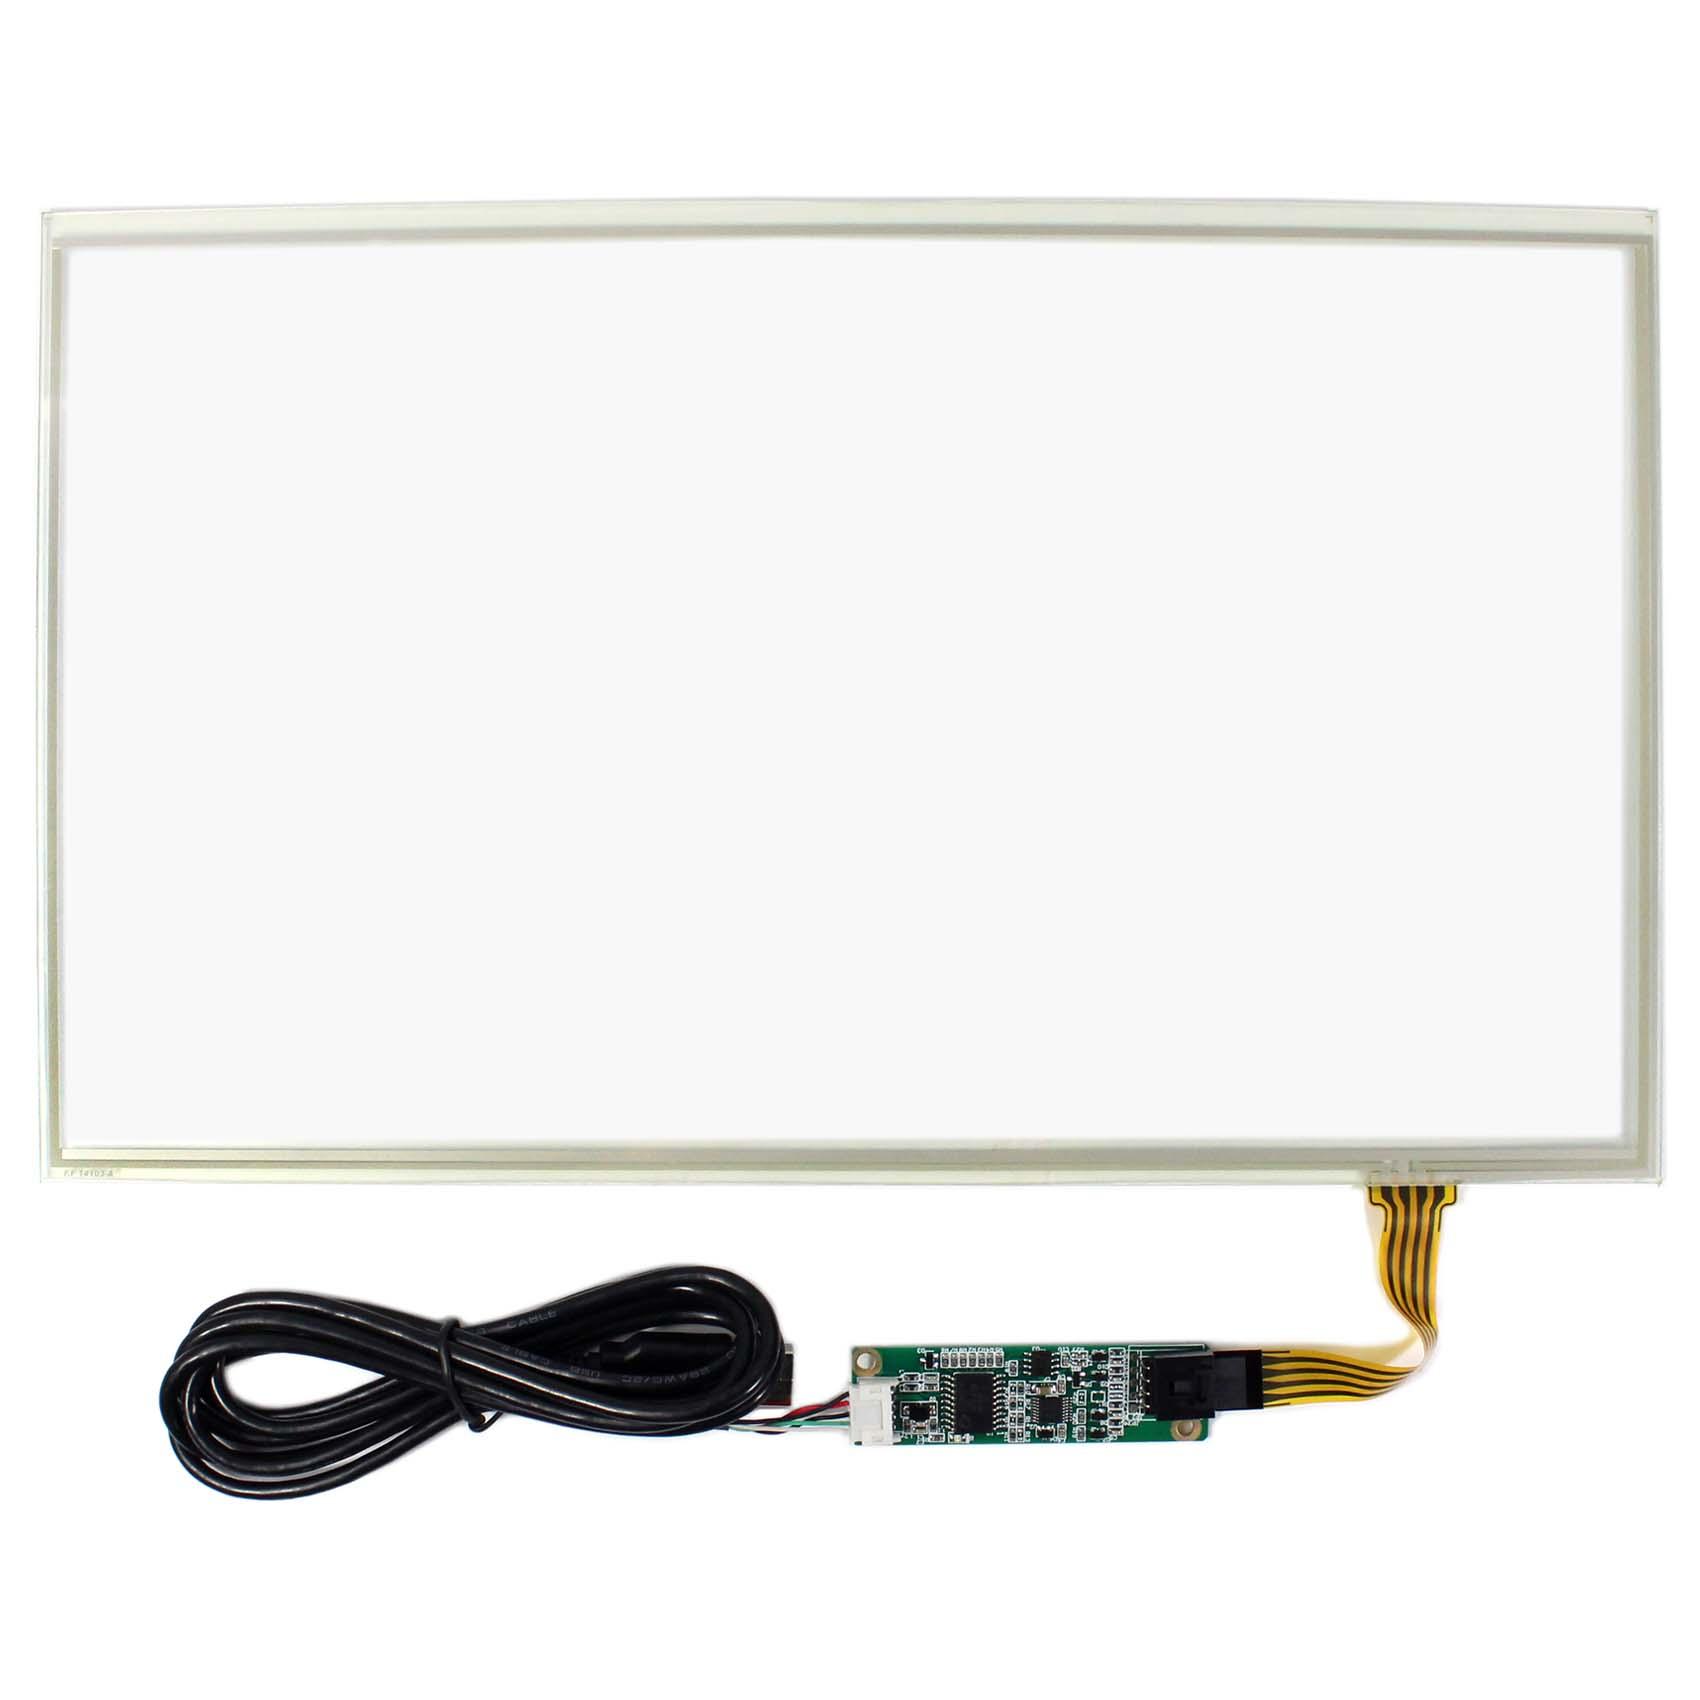 Aliexpress Buy 14 1inch 4 Wire Resistive Touch Panel With Controller For 14inch X768